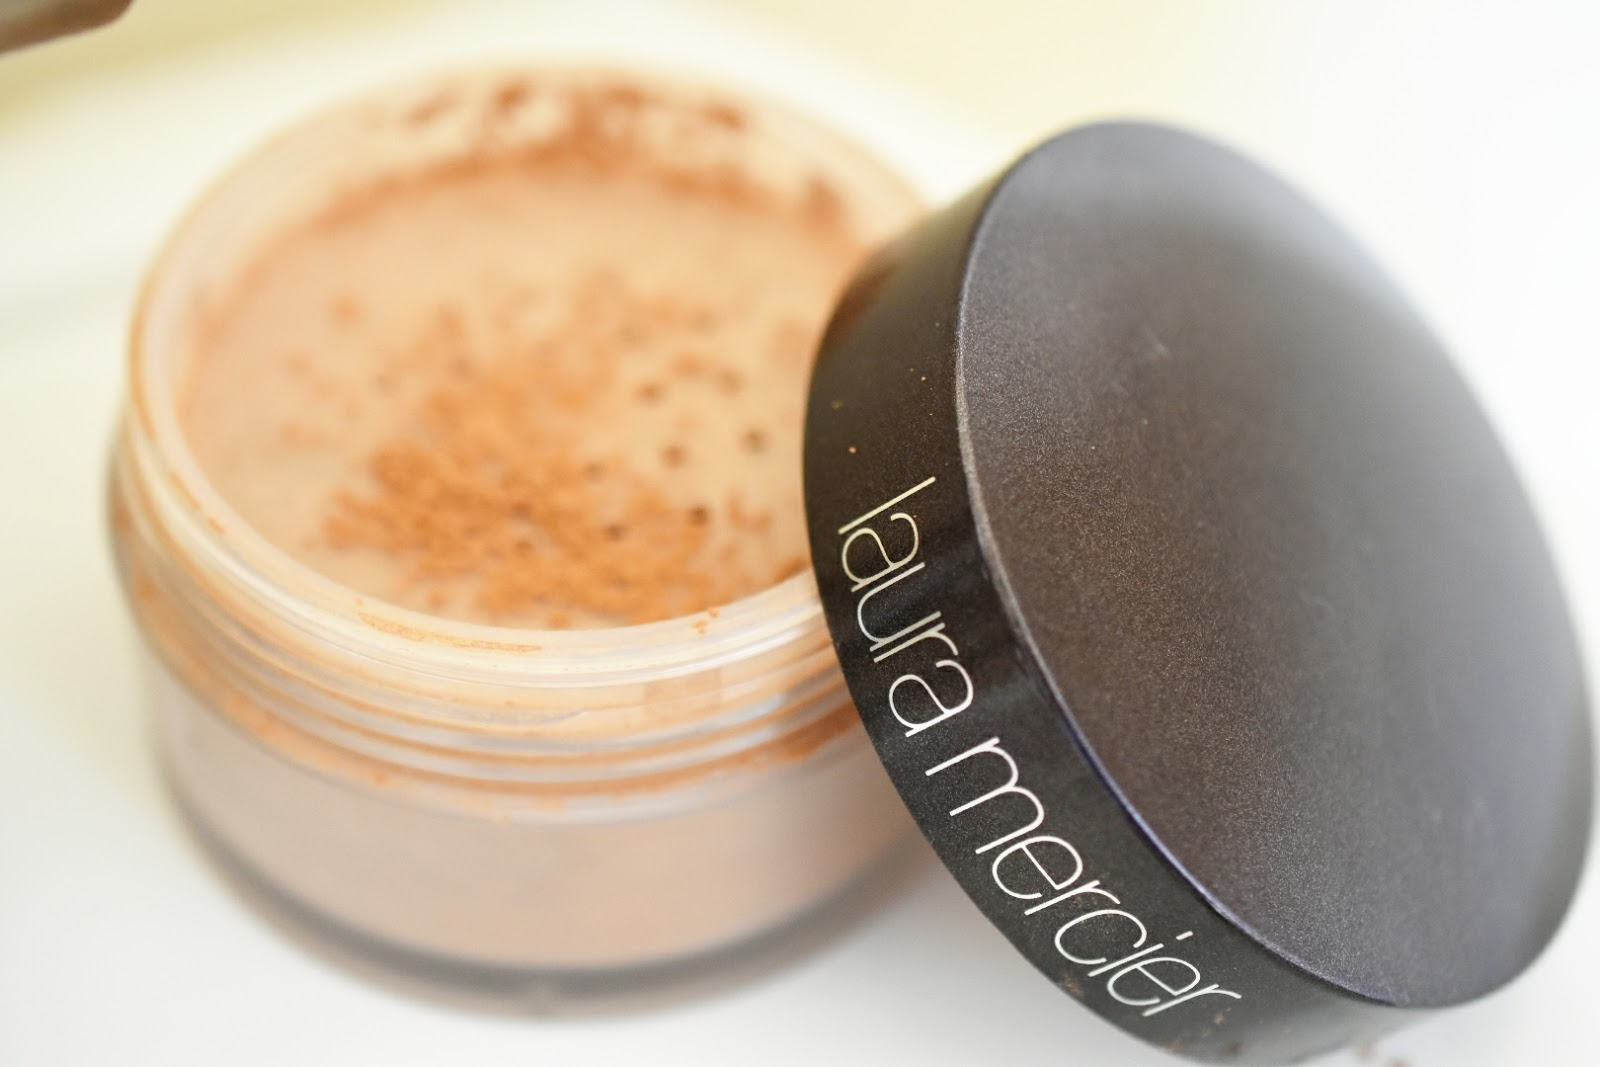 laura mercier translucent powder tutorial